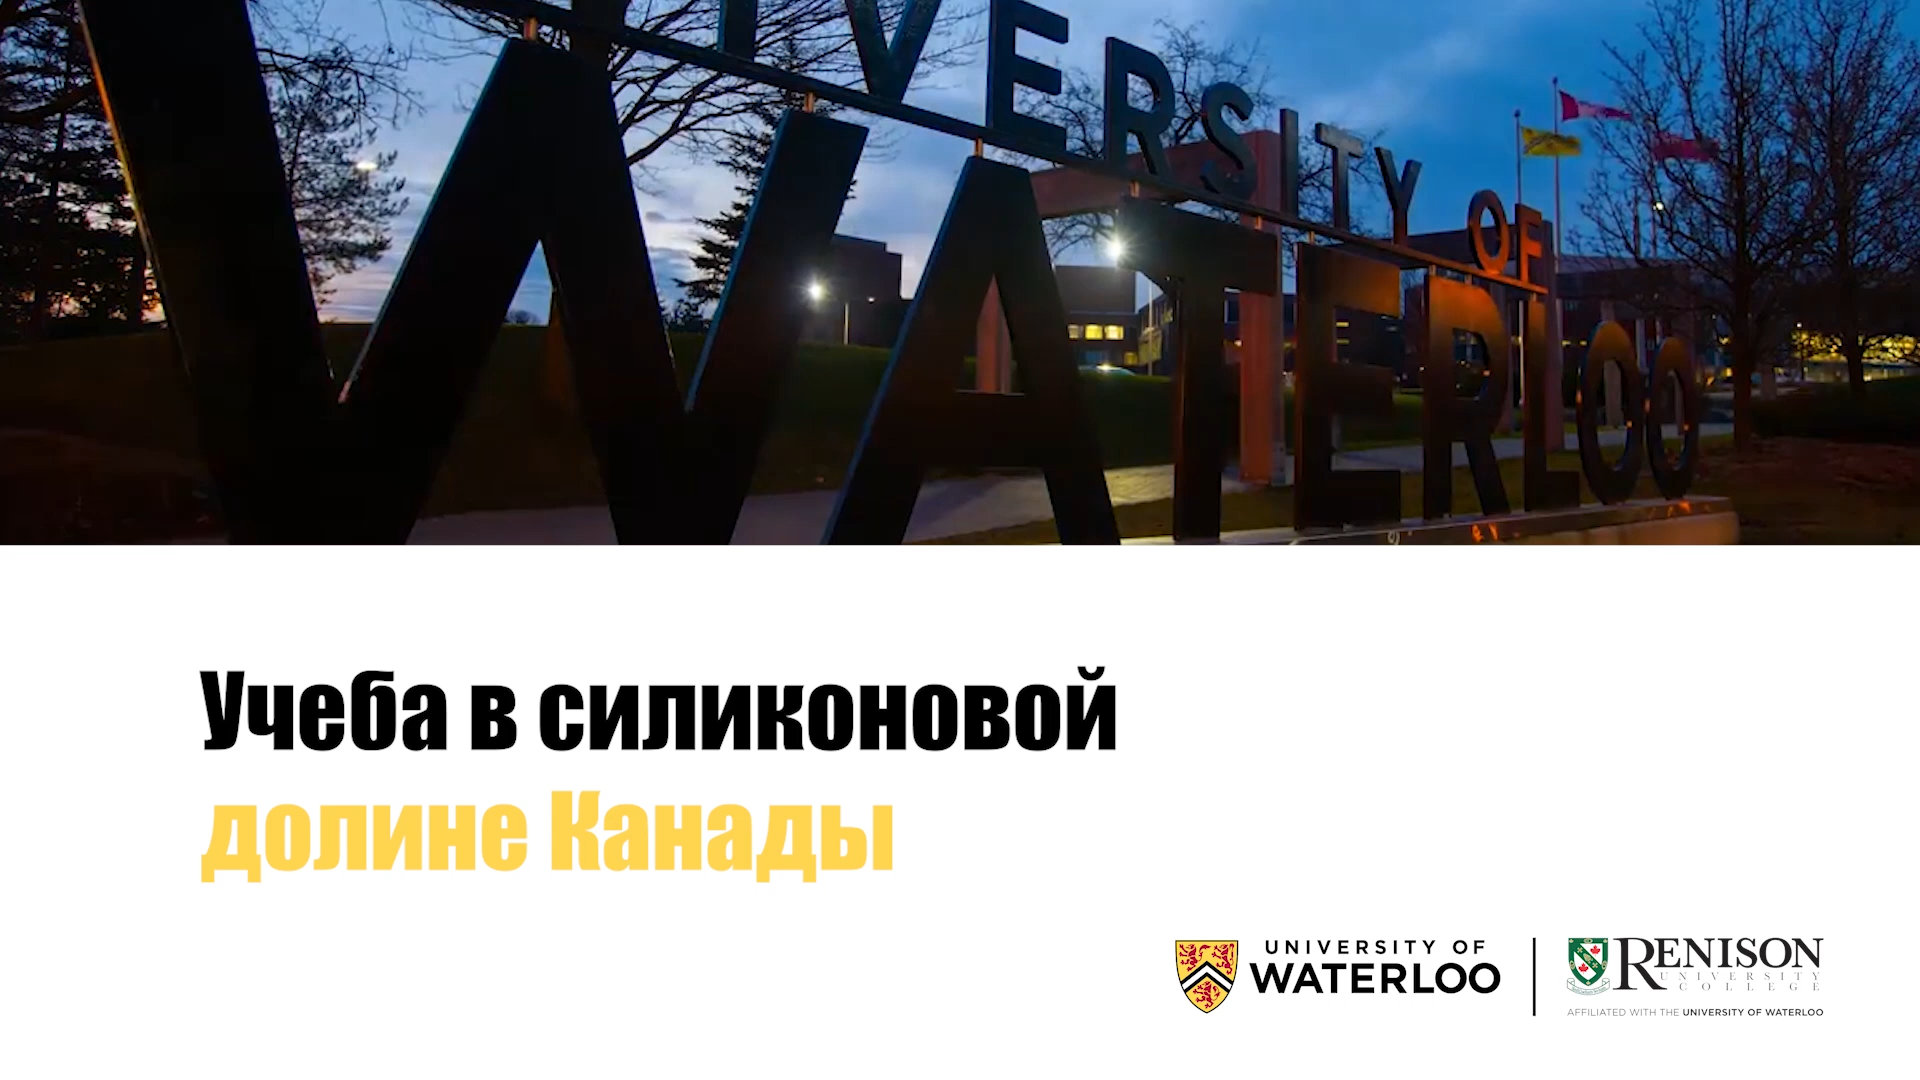 Учеба в силиконовой долине Канады (University of Waterloo)